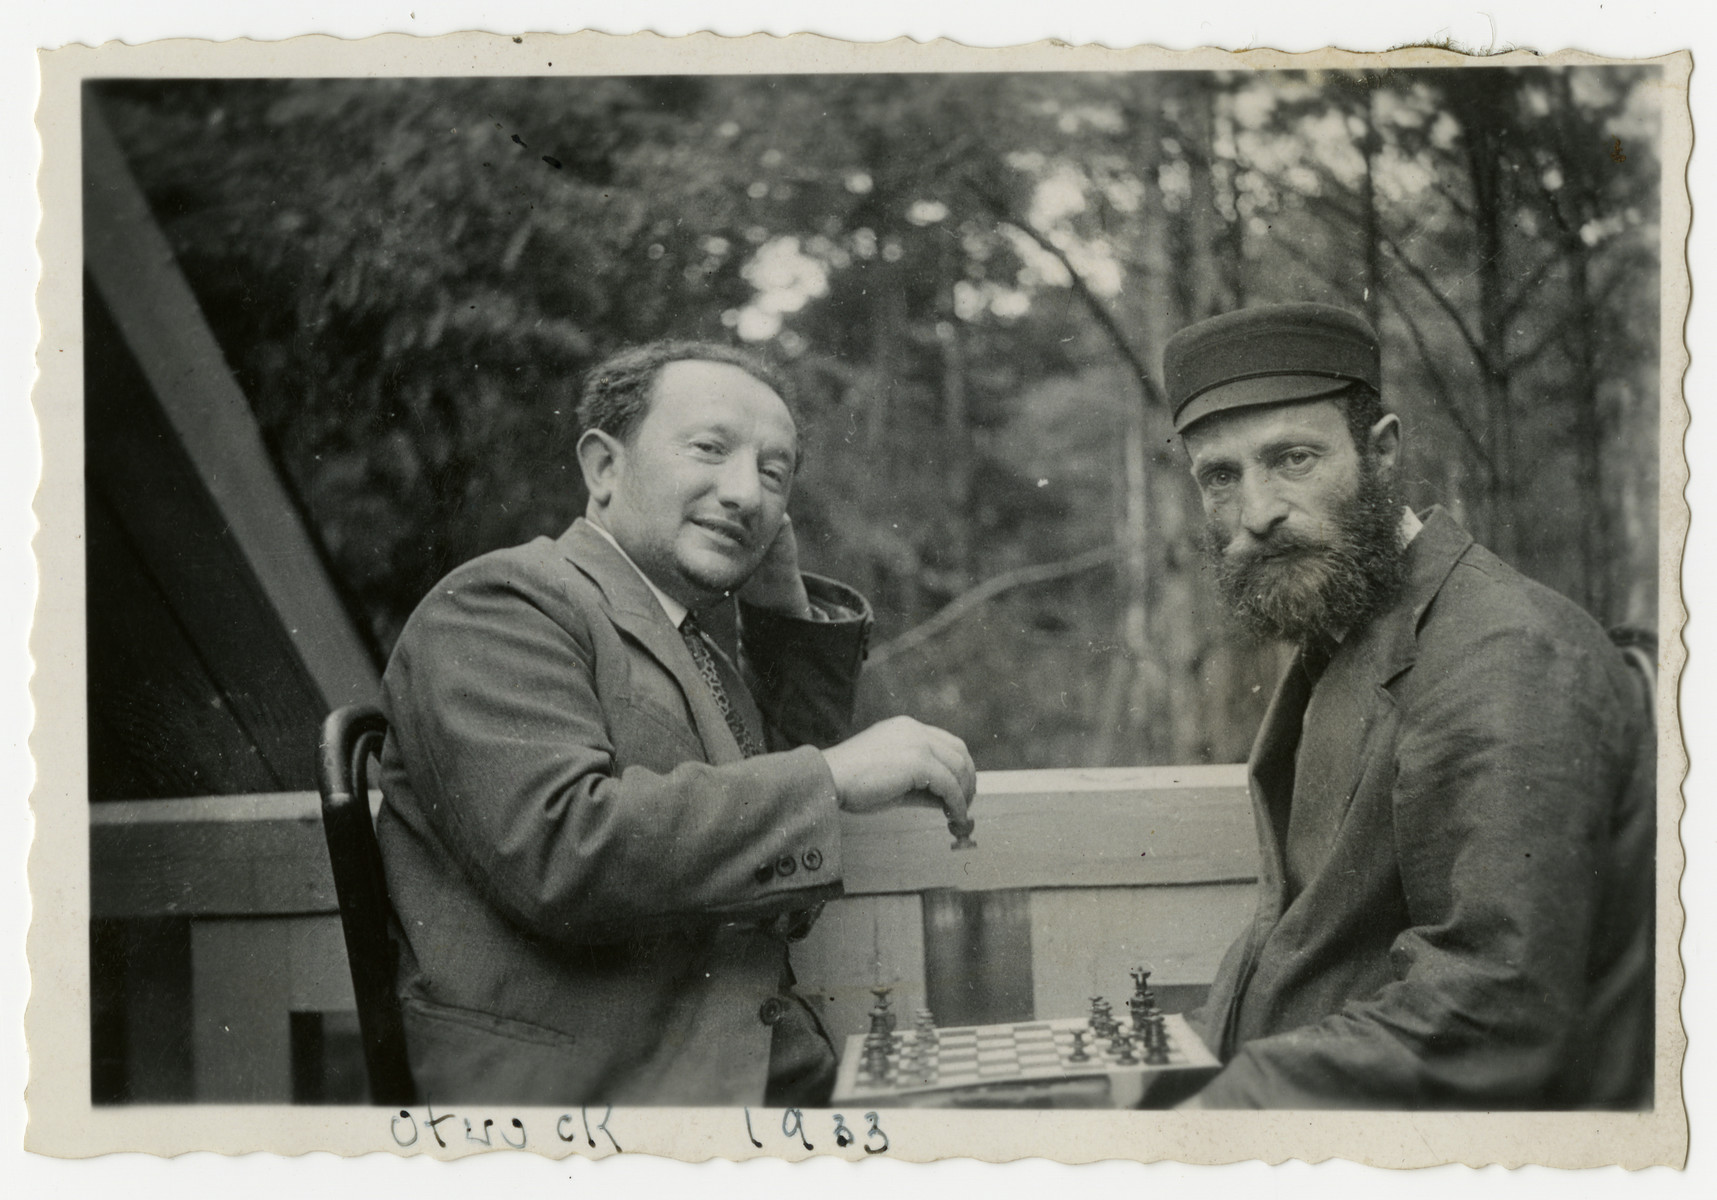 Two Jewish men play chess outside on a veranda.   Pictured on the left is donor's uncle Pinchas Rabinowitz.